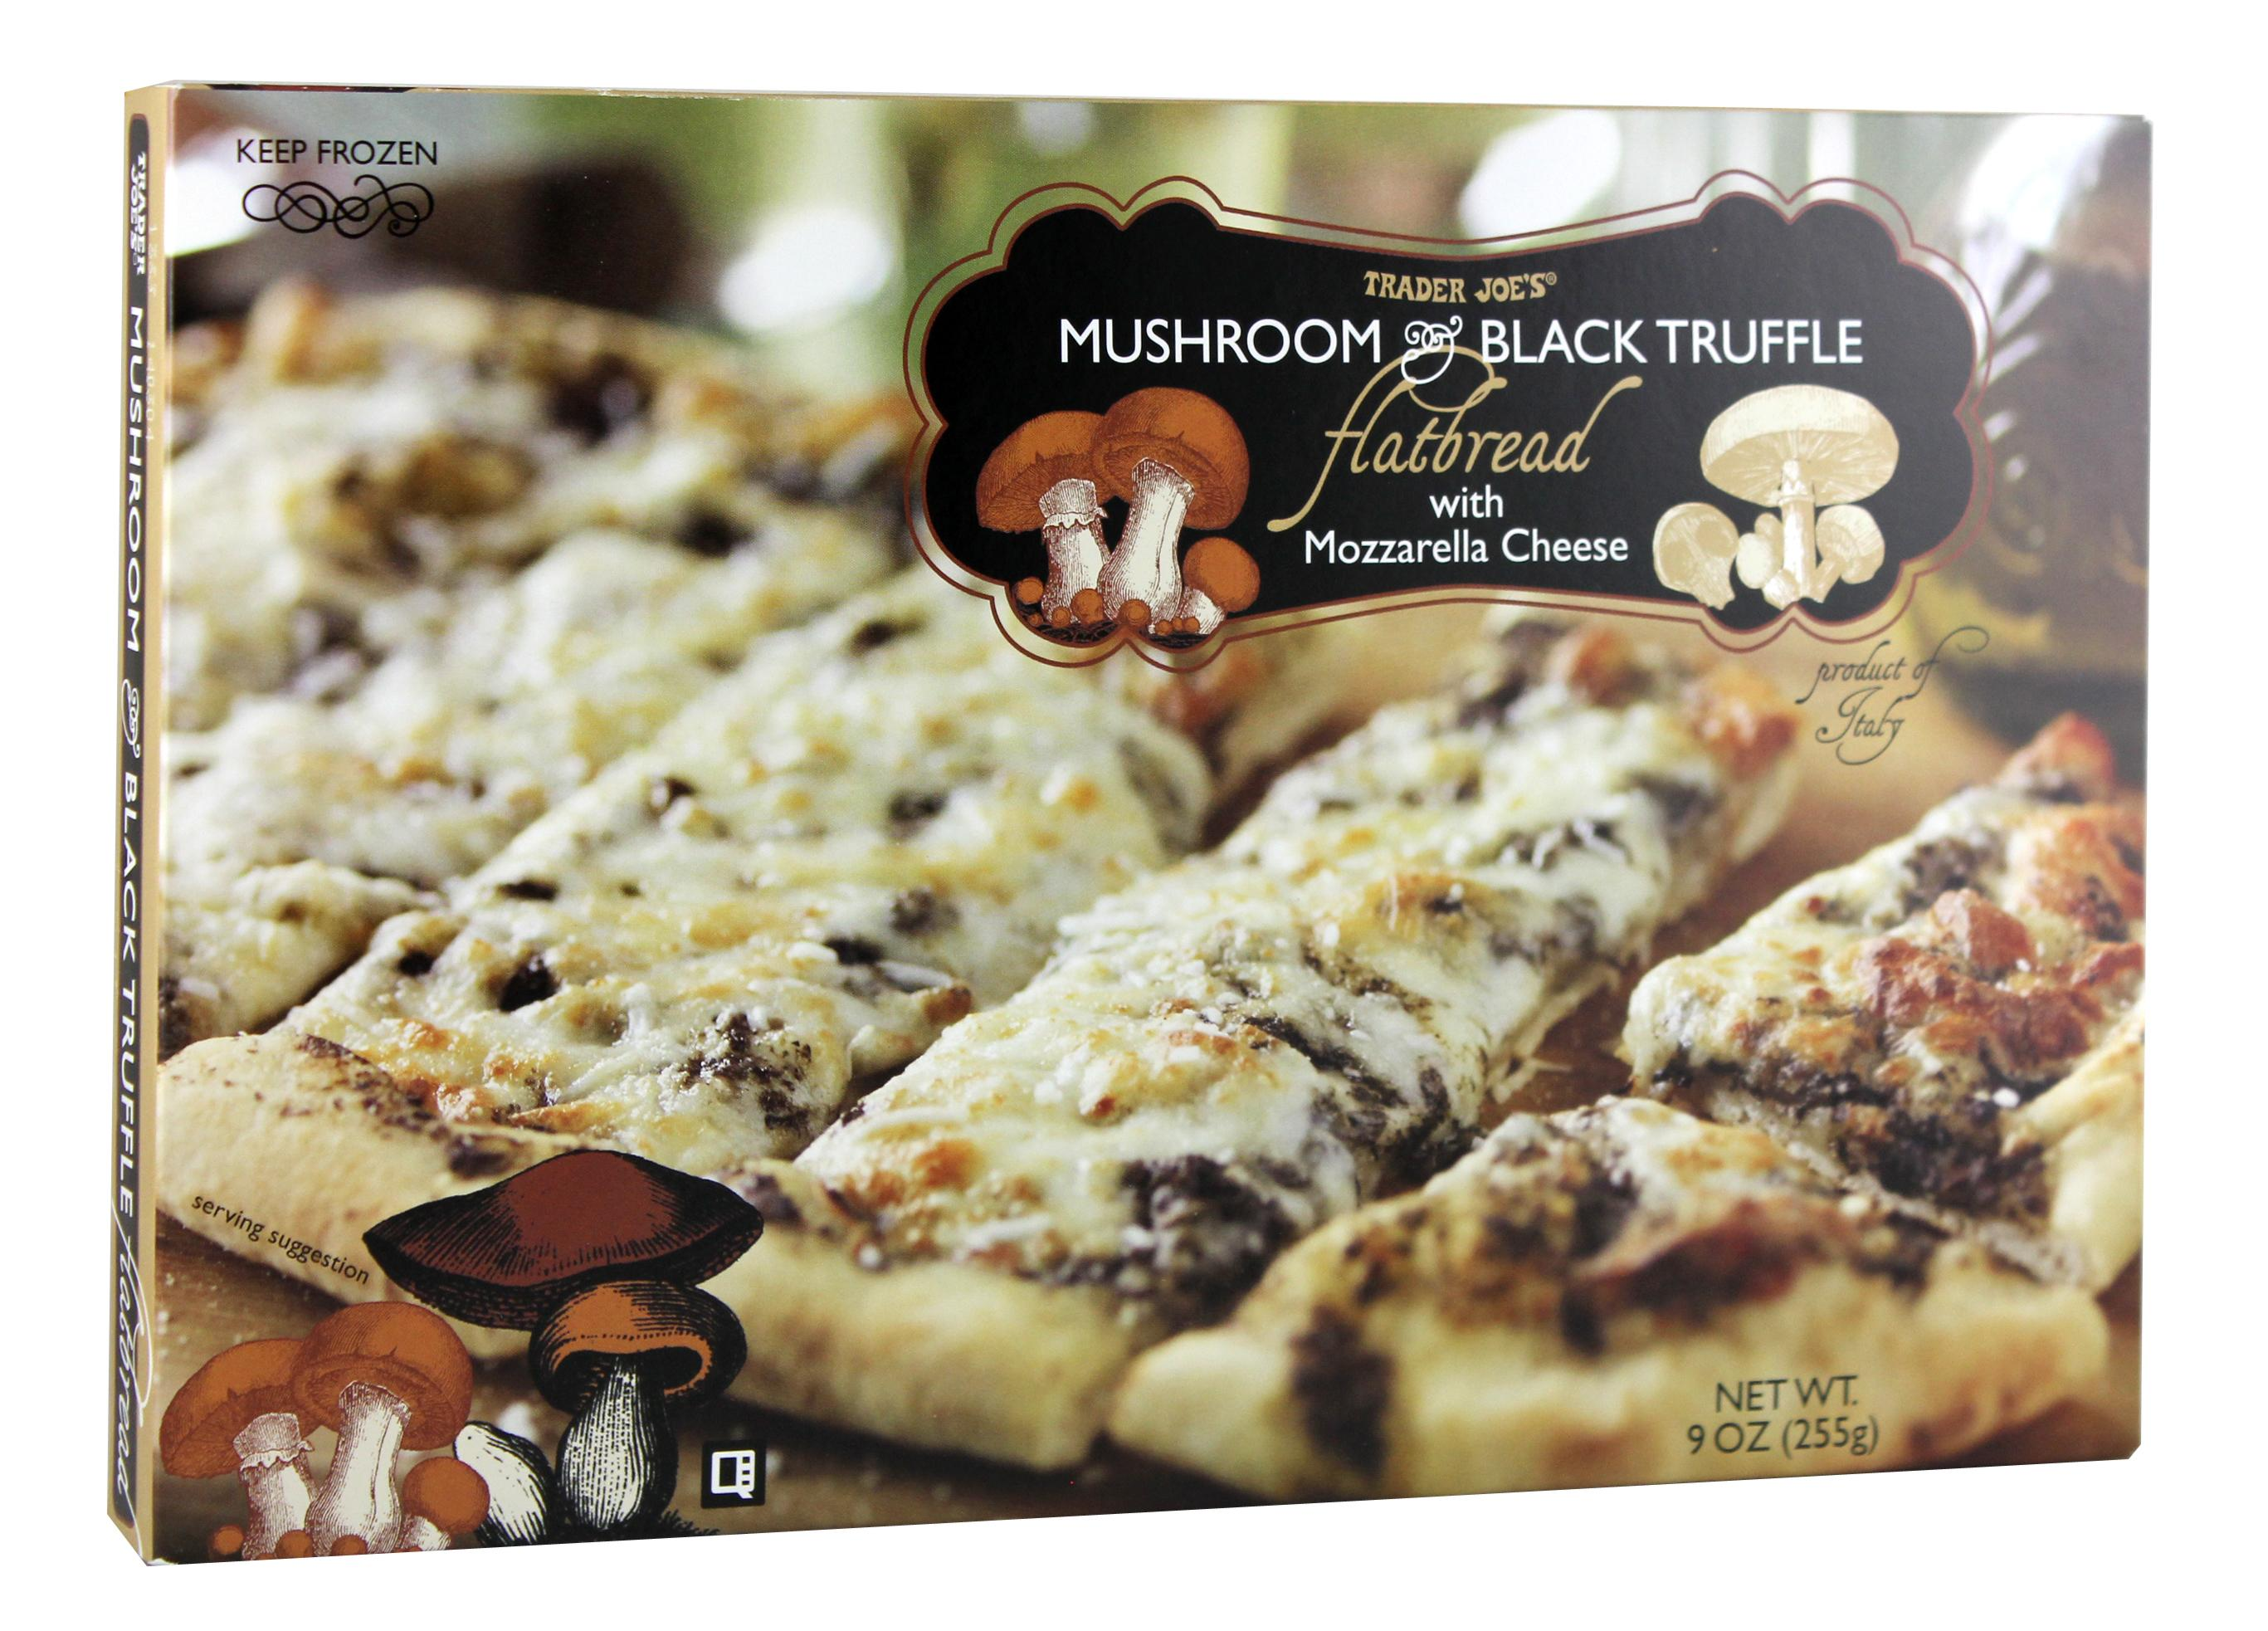 "Mushroom & Black Truffle Flatbread. Hosting a gathering? Don't want to cook? Bake up this flatbread and wow your guests.{ }On a monthly basis I rotate through three grocery stops - Costco, Walmart Pick-up, and Trader Joe's. And, you guessed it, Trader Joe's is my favorite. Do you love it too? I have classic staples there and am always finding new favorites. That's the joy things there follow the old adage ""Make new friends but keep the old"". How they smoosh so many amazing products into their few rows, I will never know, but I no doubt discover fabulous things ever time my red cart wanders through. (Image: Trader Joes)"